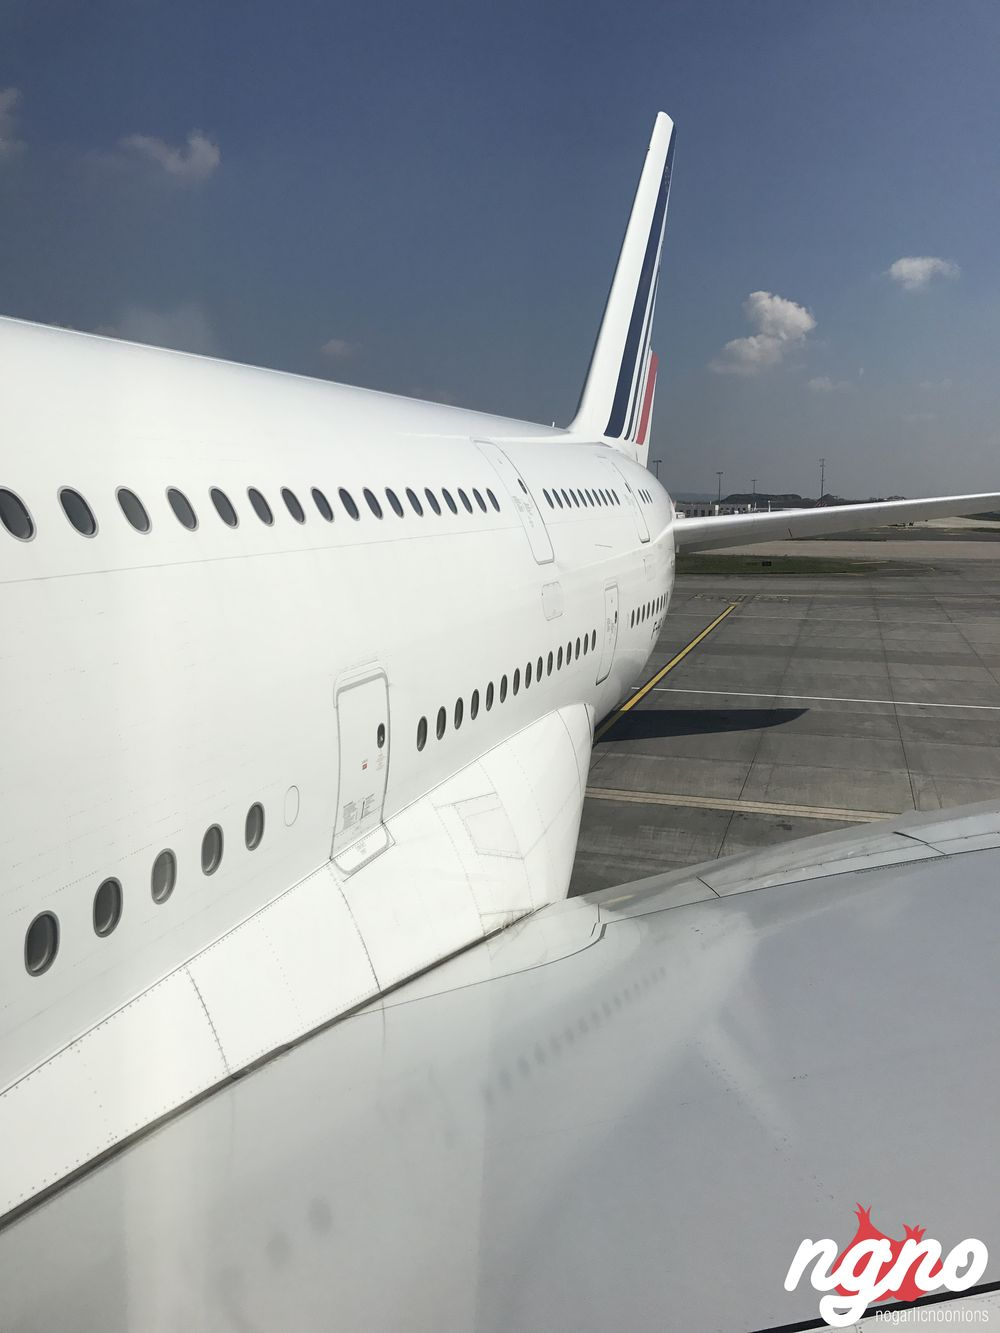 airfrance-airbus-a380-plane-business-class442017-04-06-08-38-36